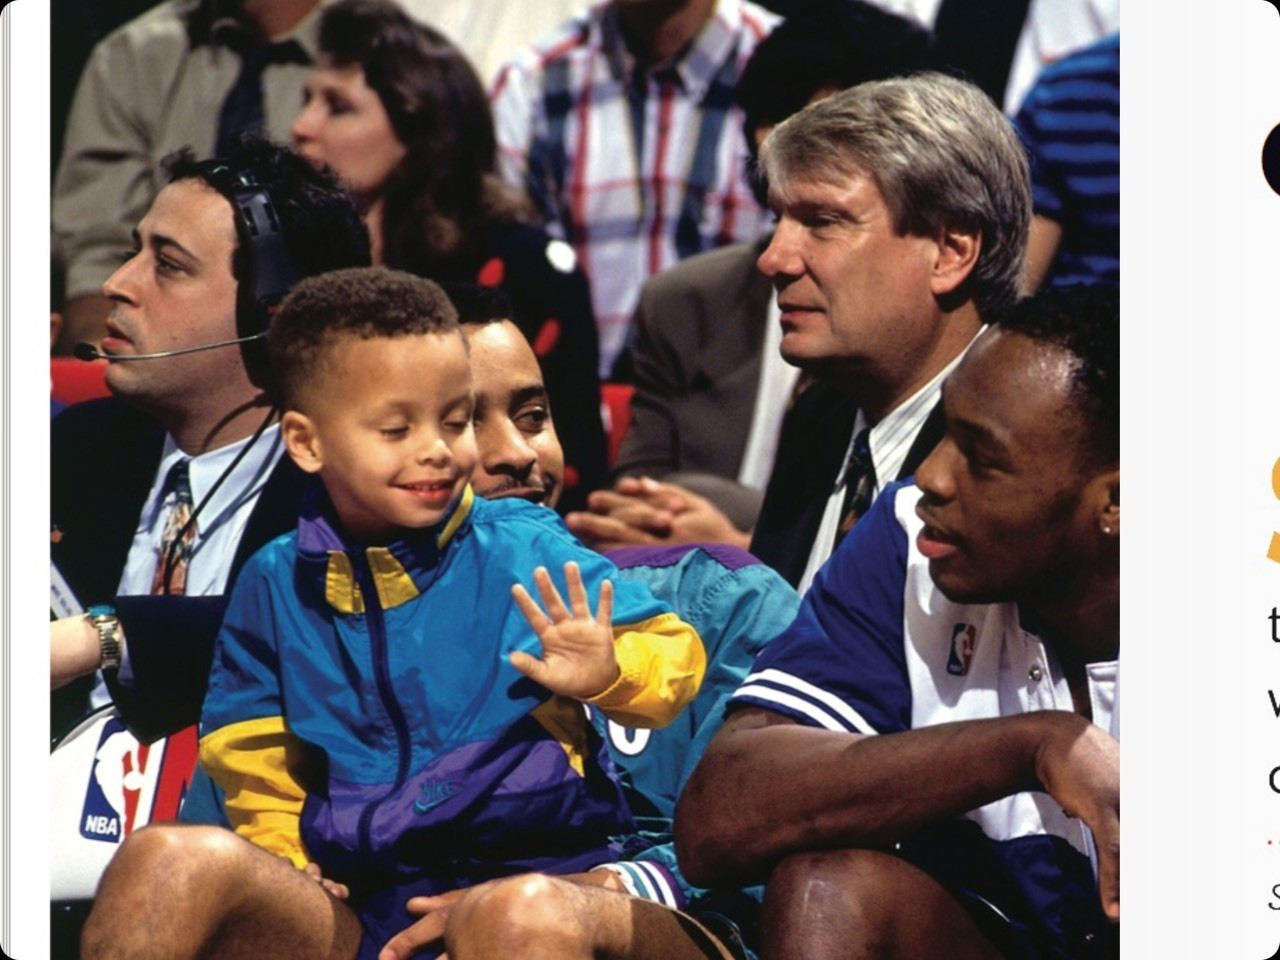 #tbt the 1992 3 point contest a little version of steph and a man we know as Mr.Dell Curry #iknowwererighleygetsit